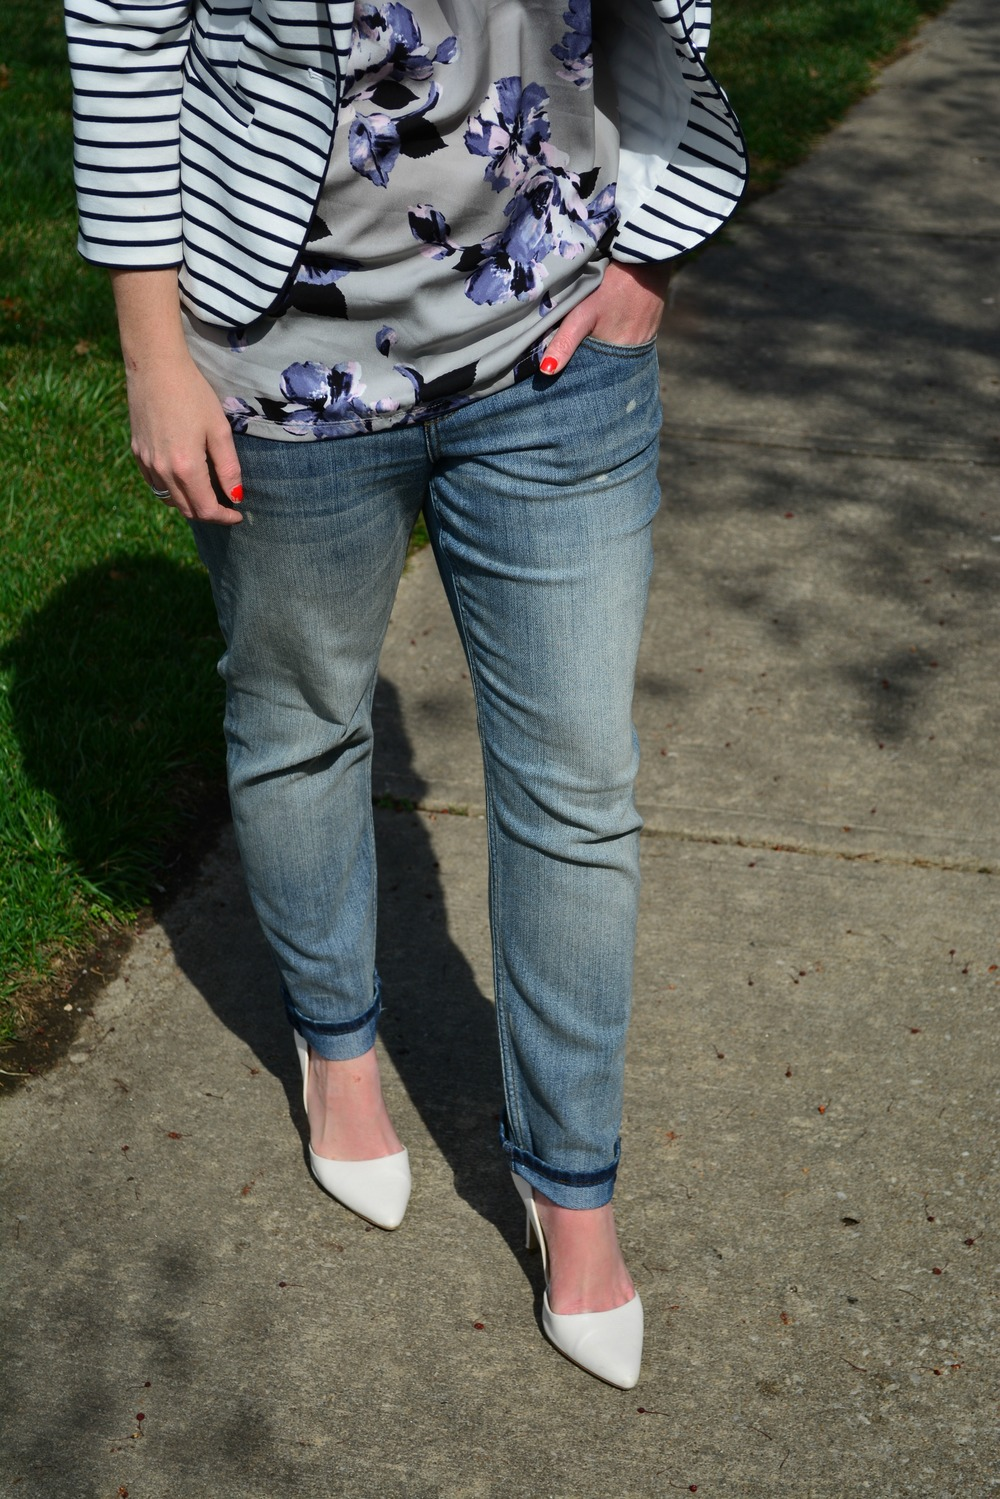 Boyfriend jeans and white pumps